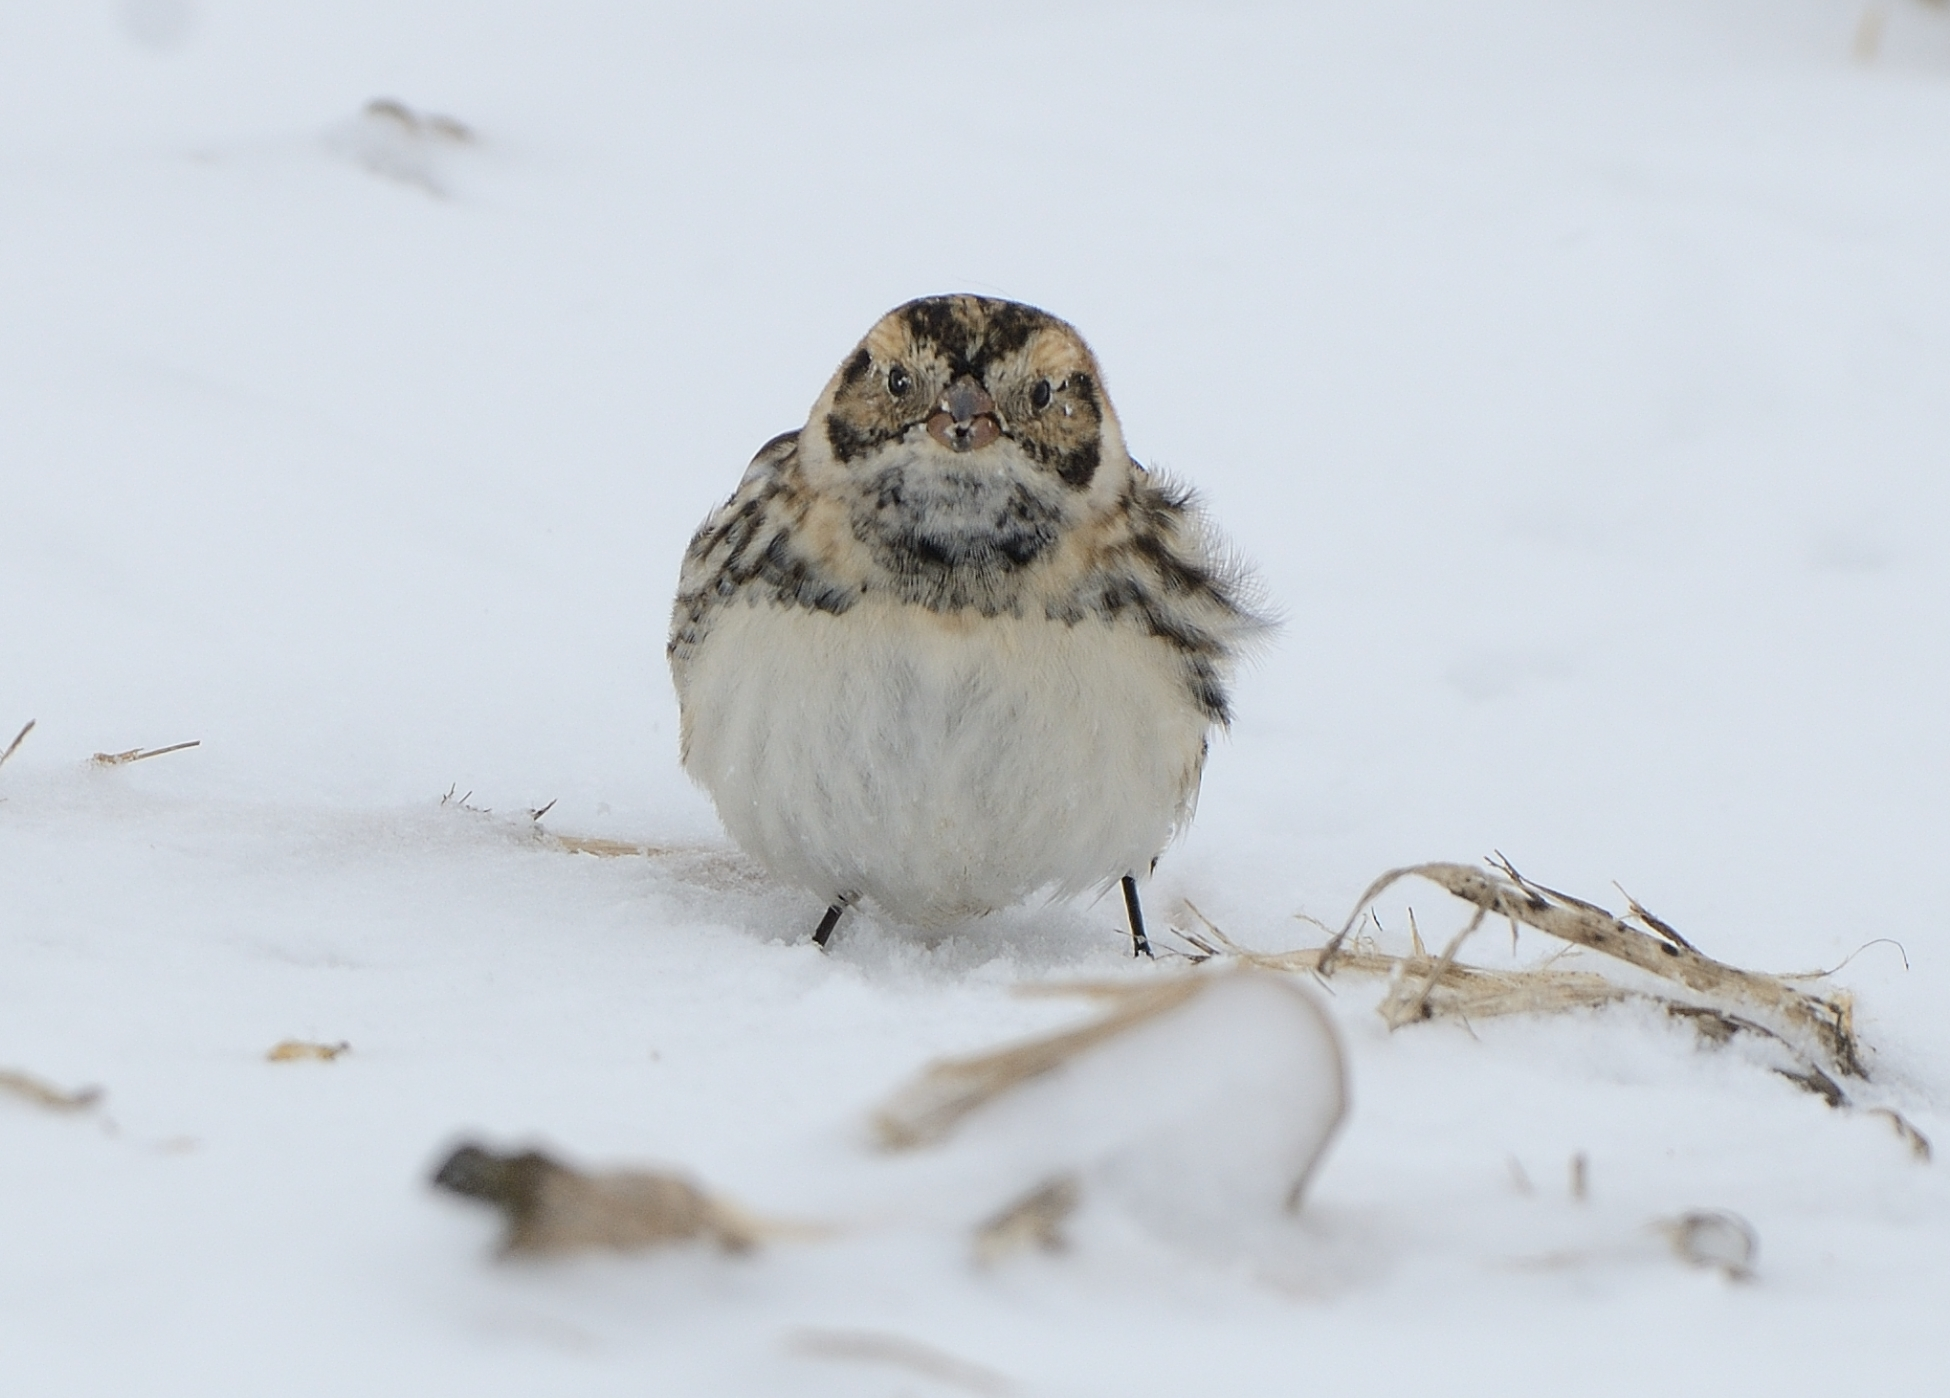 Just another Lapland longspur. Photo by Dave Inman